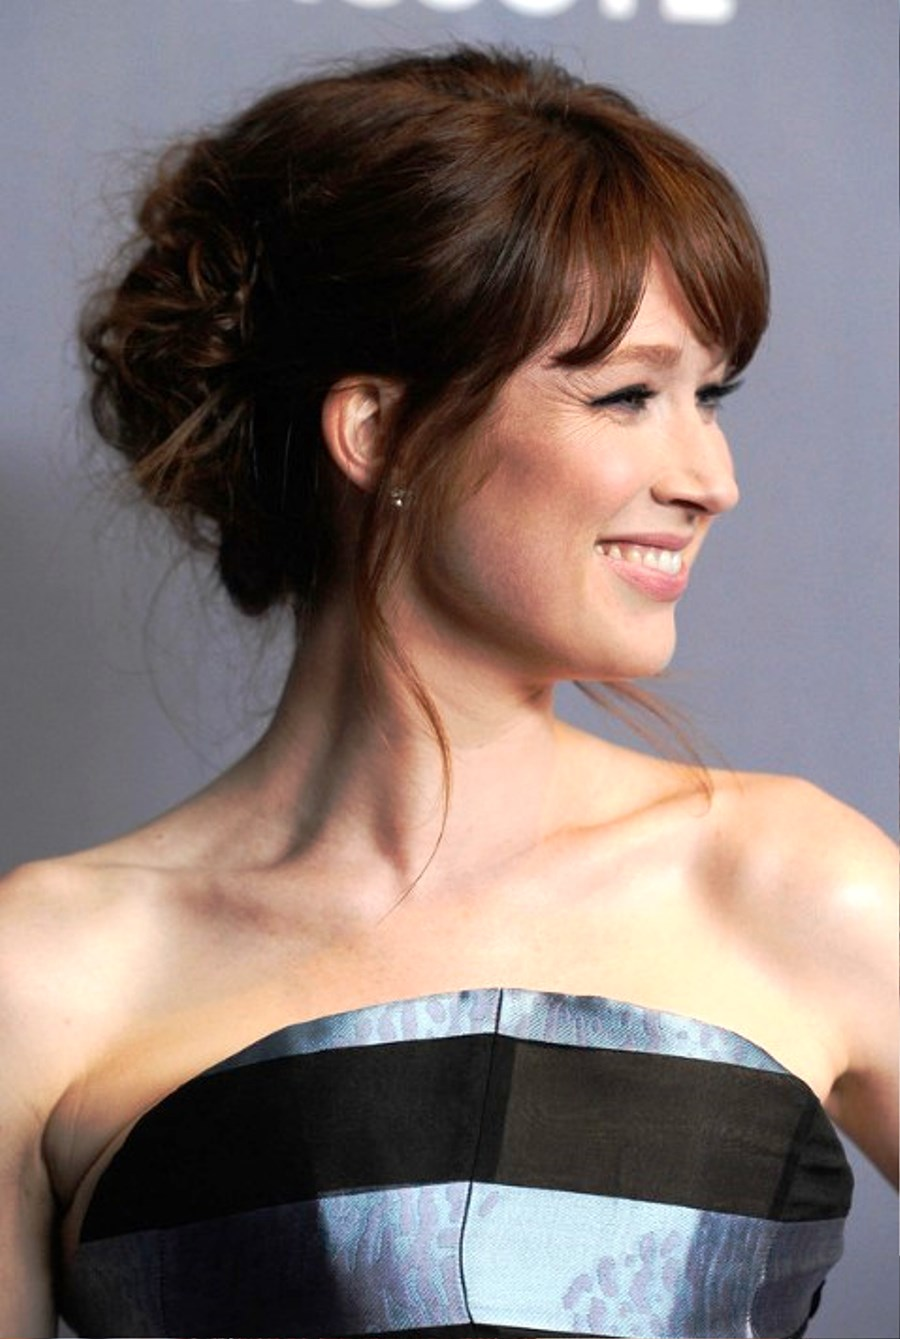 Pictures Of Ellie Kemper Cute Updo Hairstyle With Bangs